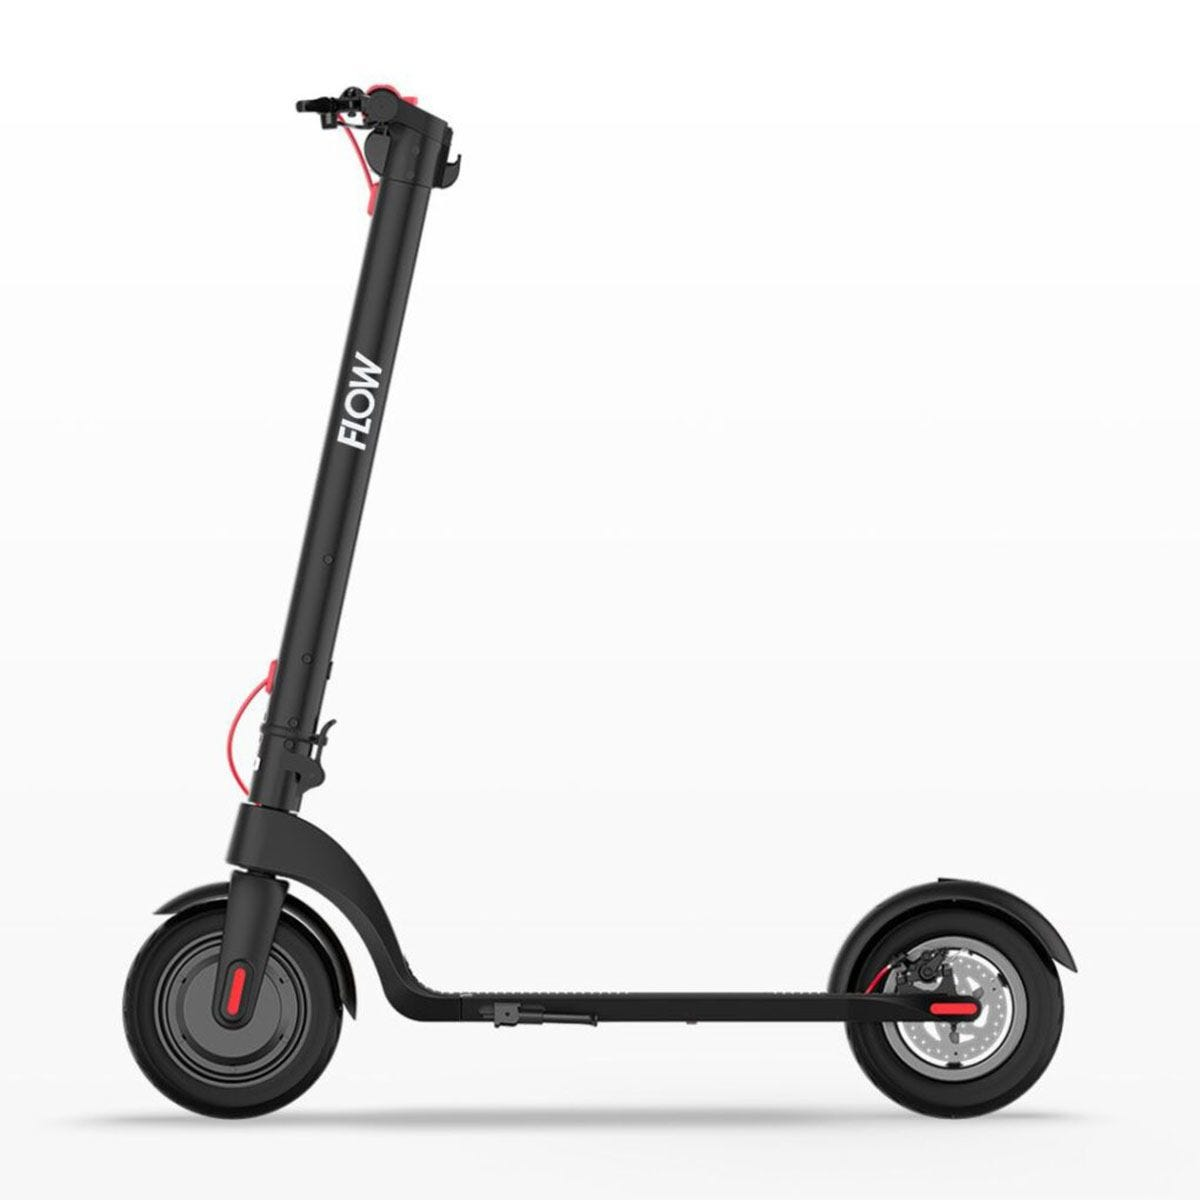 FLOW Greenwich XT Pro Electric Scooter - Black